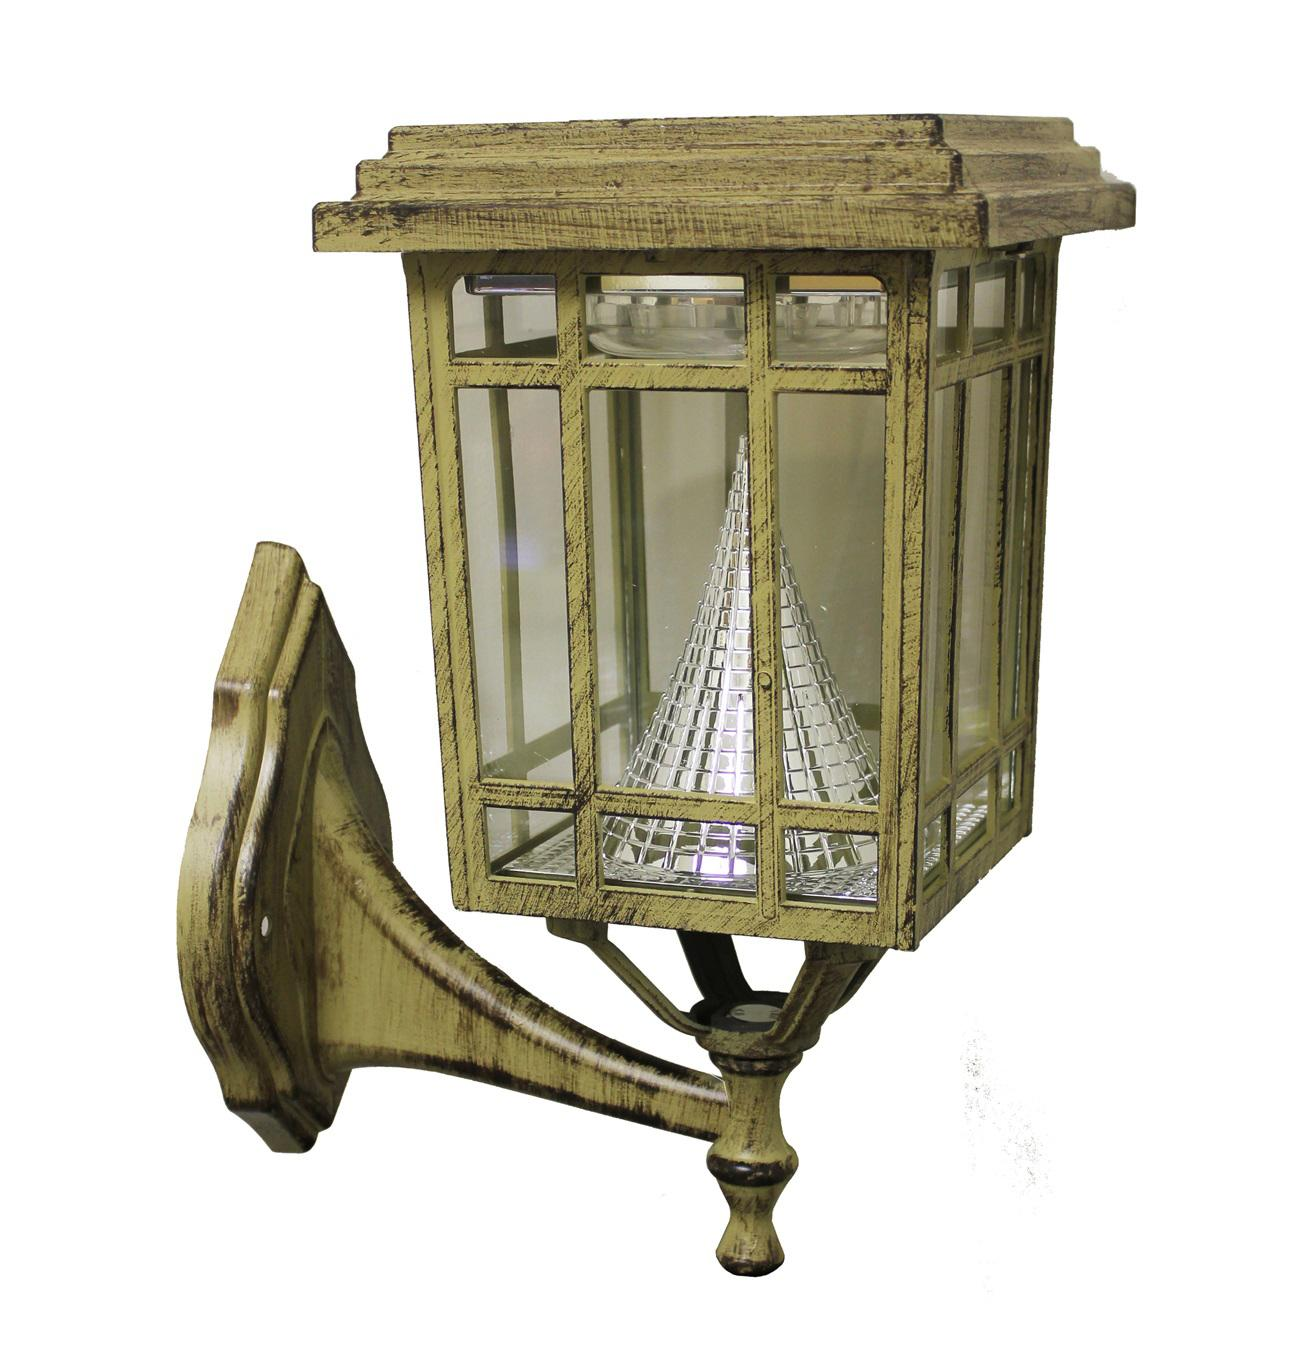 Outdoor led wall lantern olde bronze wall porch lights amazon com -  Outdoor Solar Light On Wall Mount View Larger